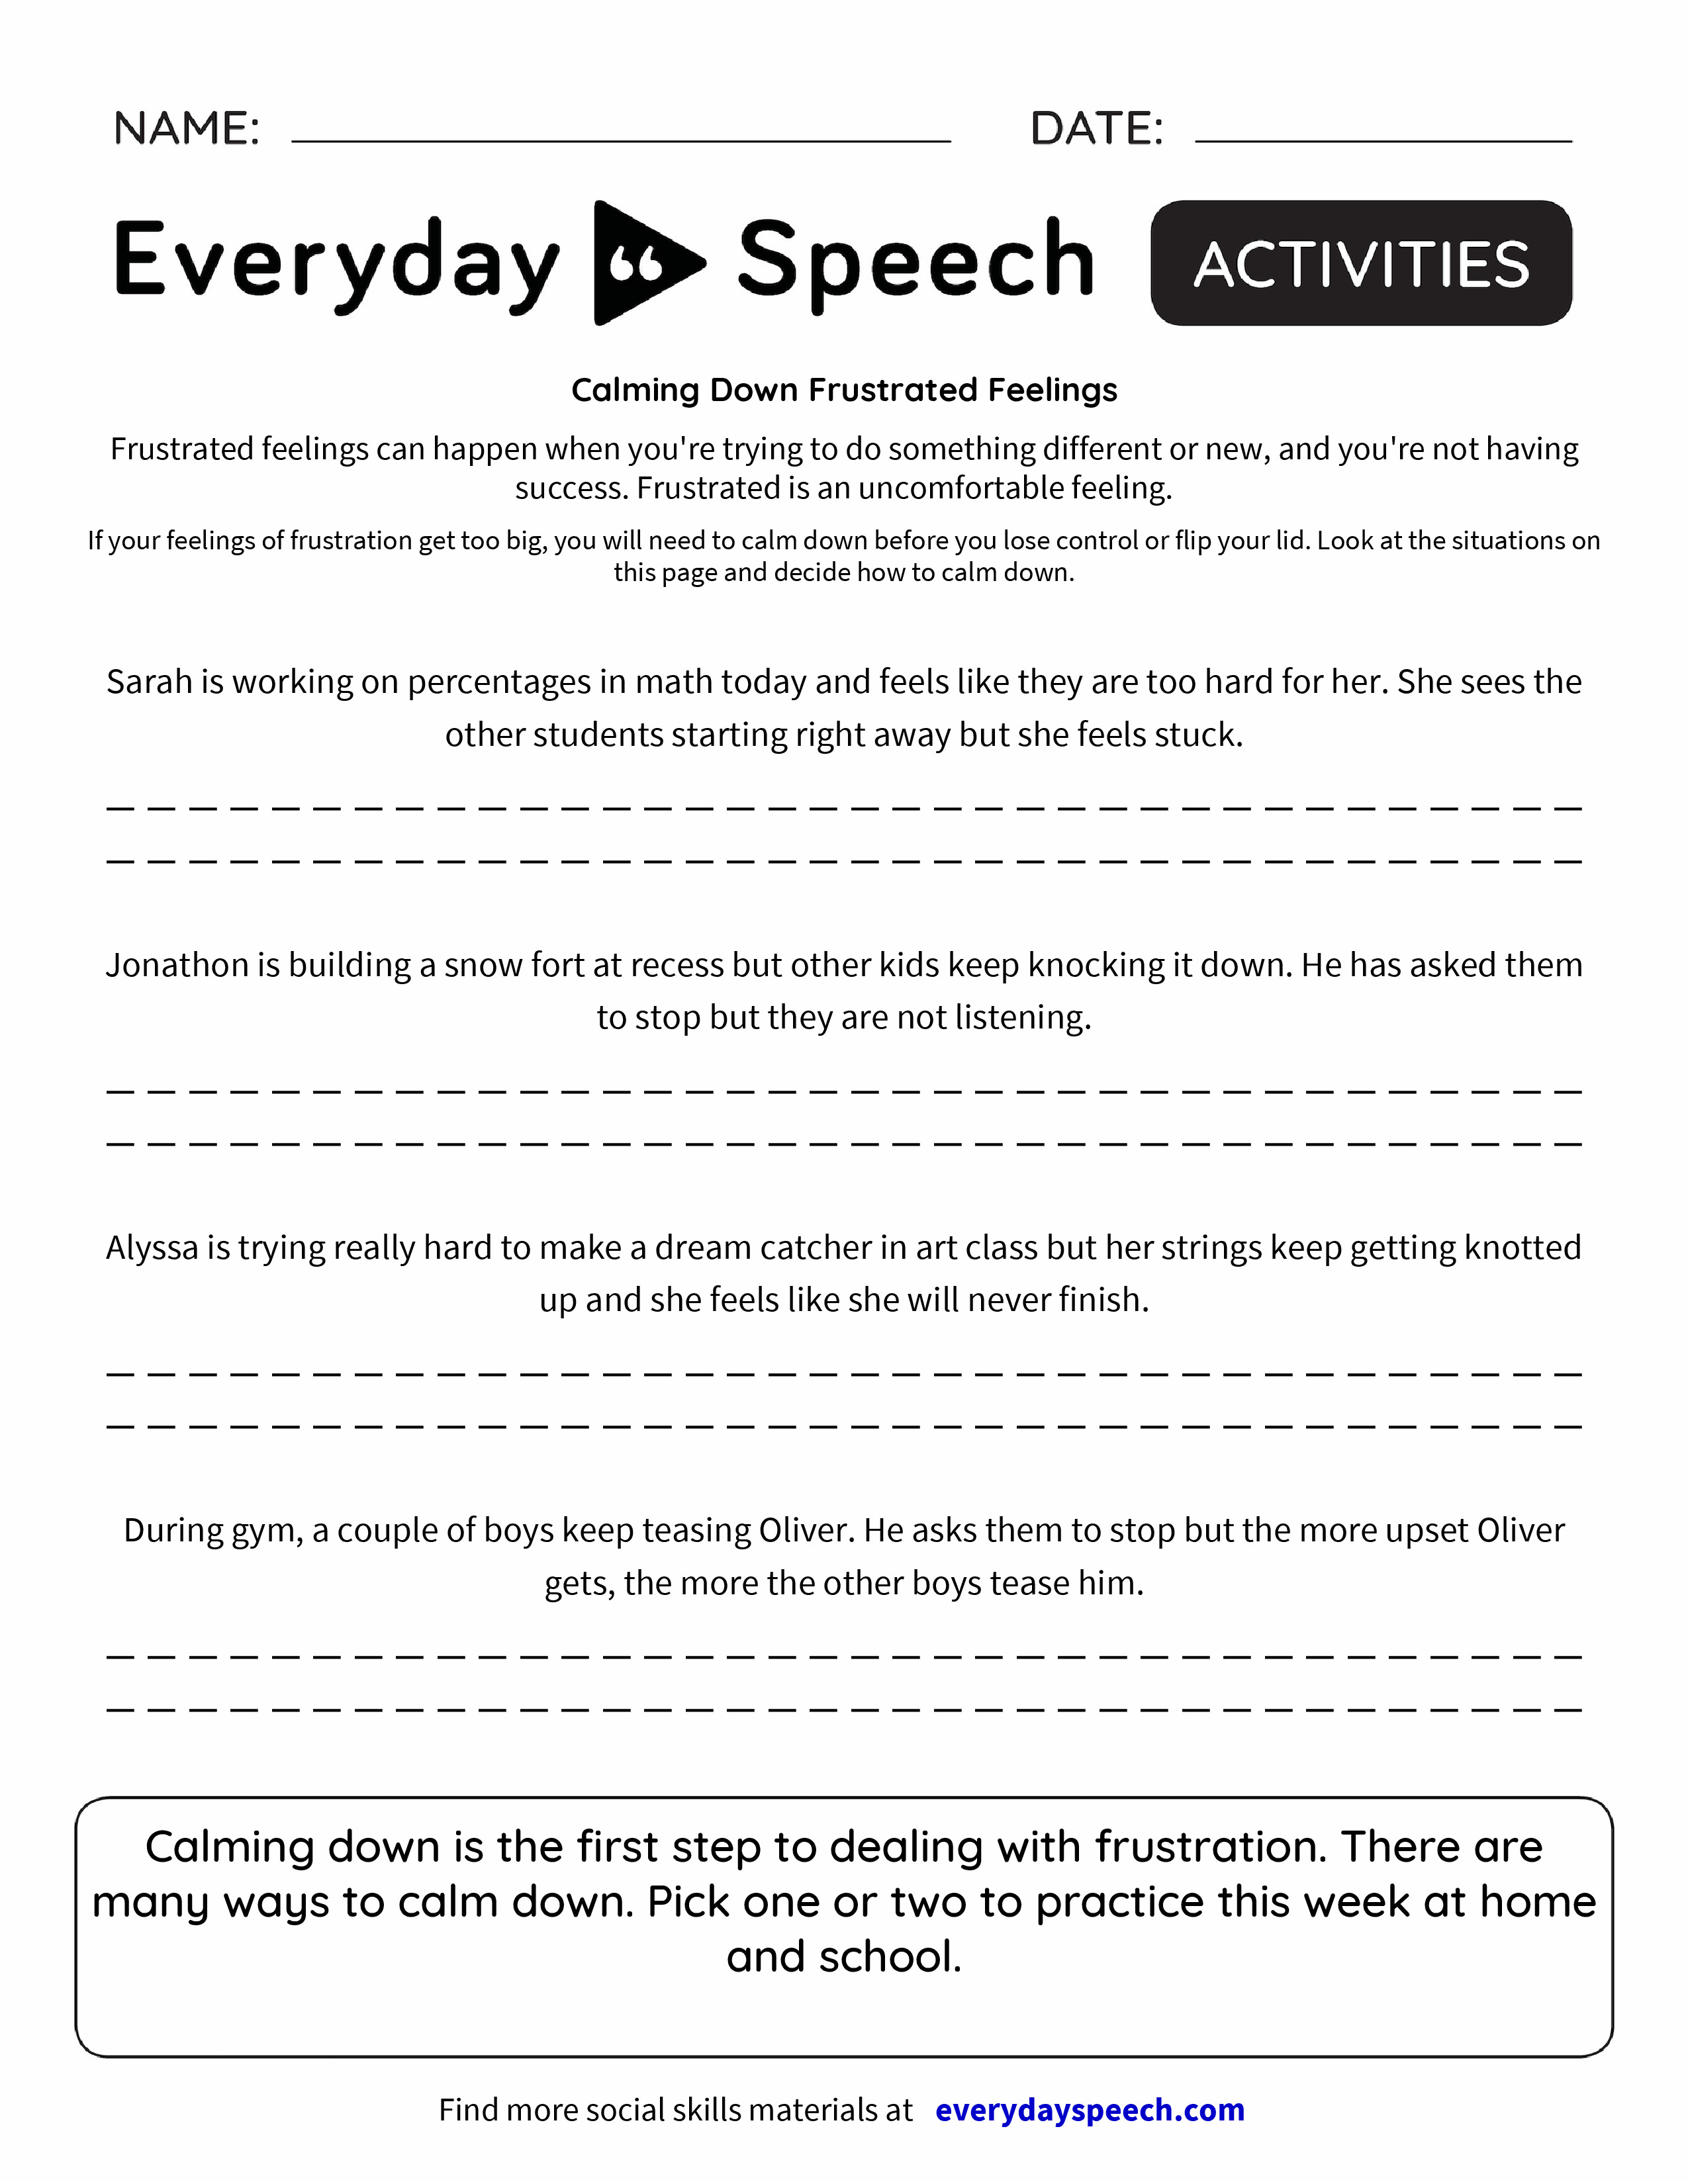 There, Their, or They'-re? | Worksheet | Education.com